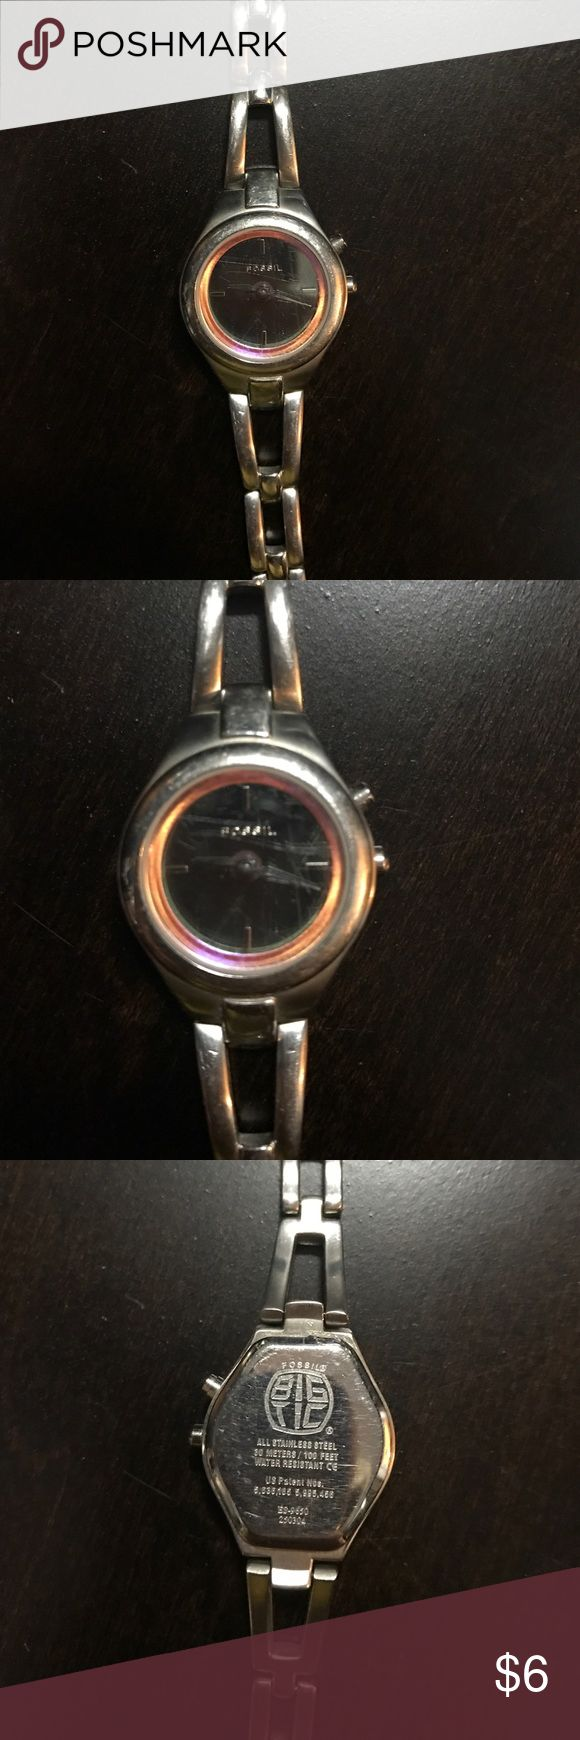 "Fossil Watch - ""Big Tic"" ⌚️ Watch This is a used Fossil ""Big Tic"" watch. Stainless steel, black dial with pink almost iridescent ring around the outside of the dial. There are a few scratches on the crystal which I tried to capture in the pic. Just needs a battery and you're ready to look stylish in your Fossil ⌚️ Fossil Accessories Watches"